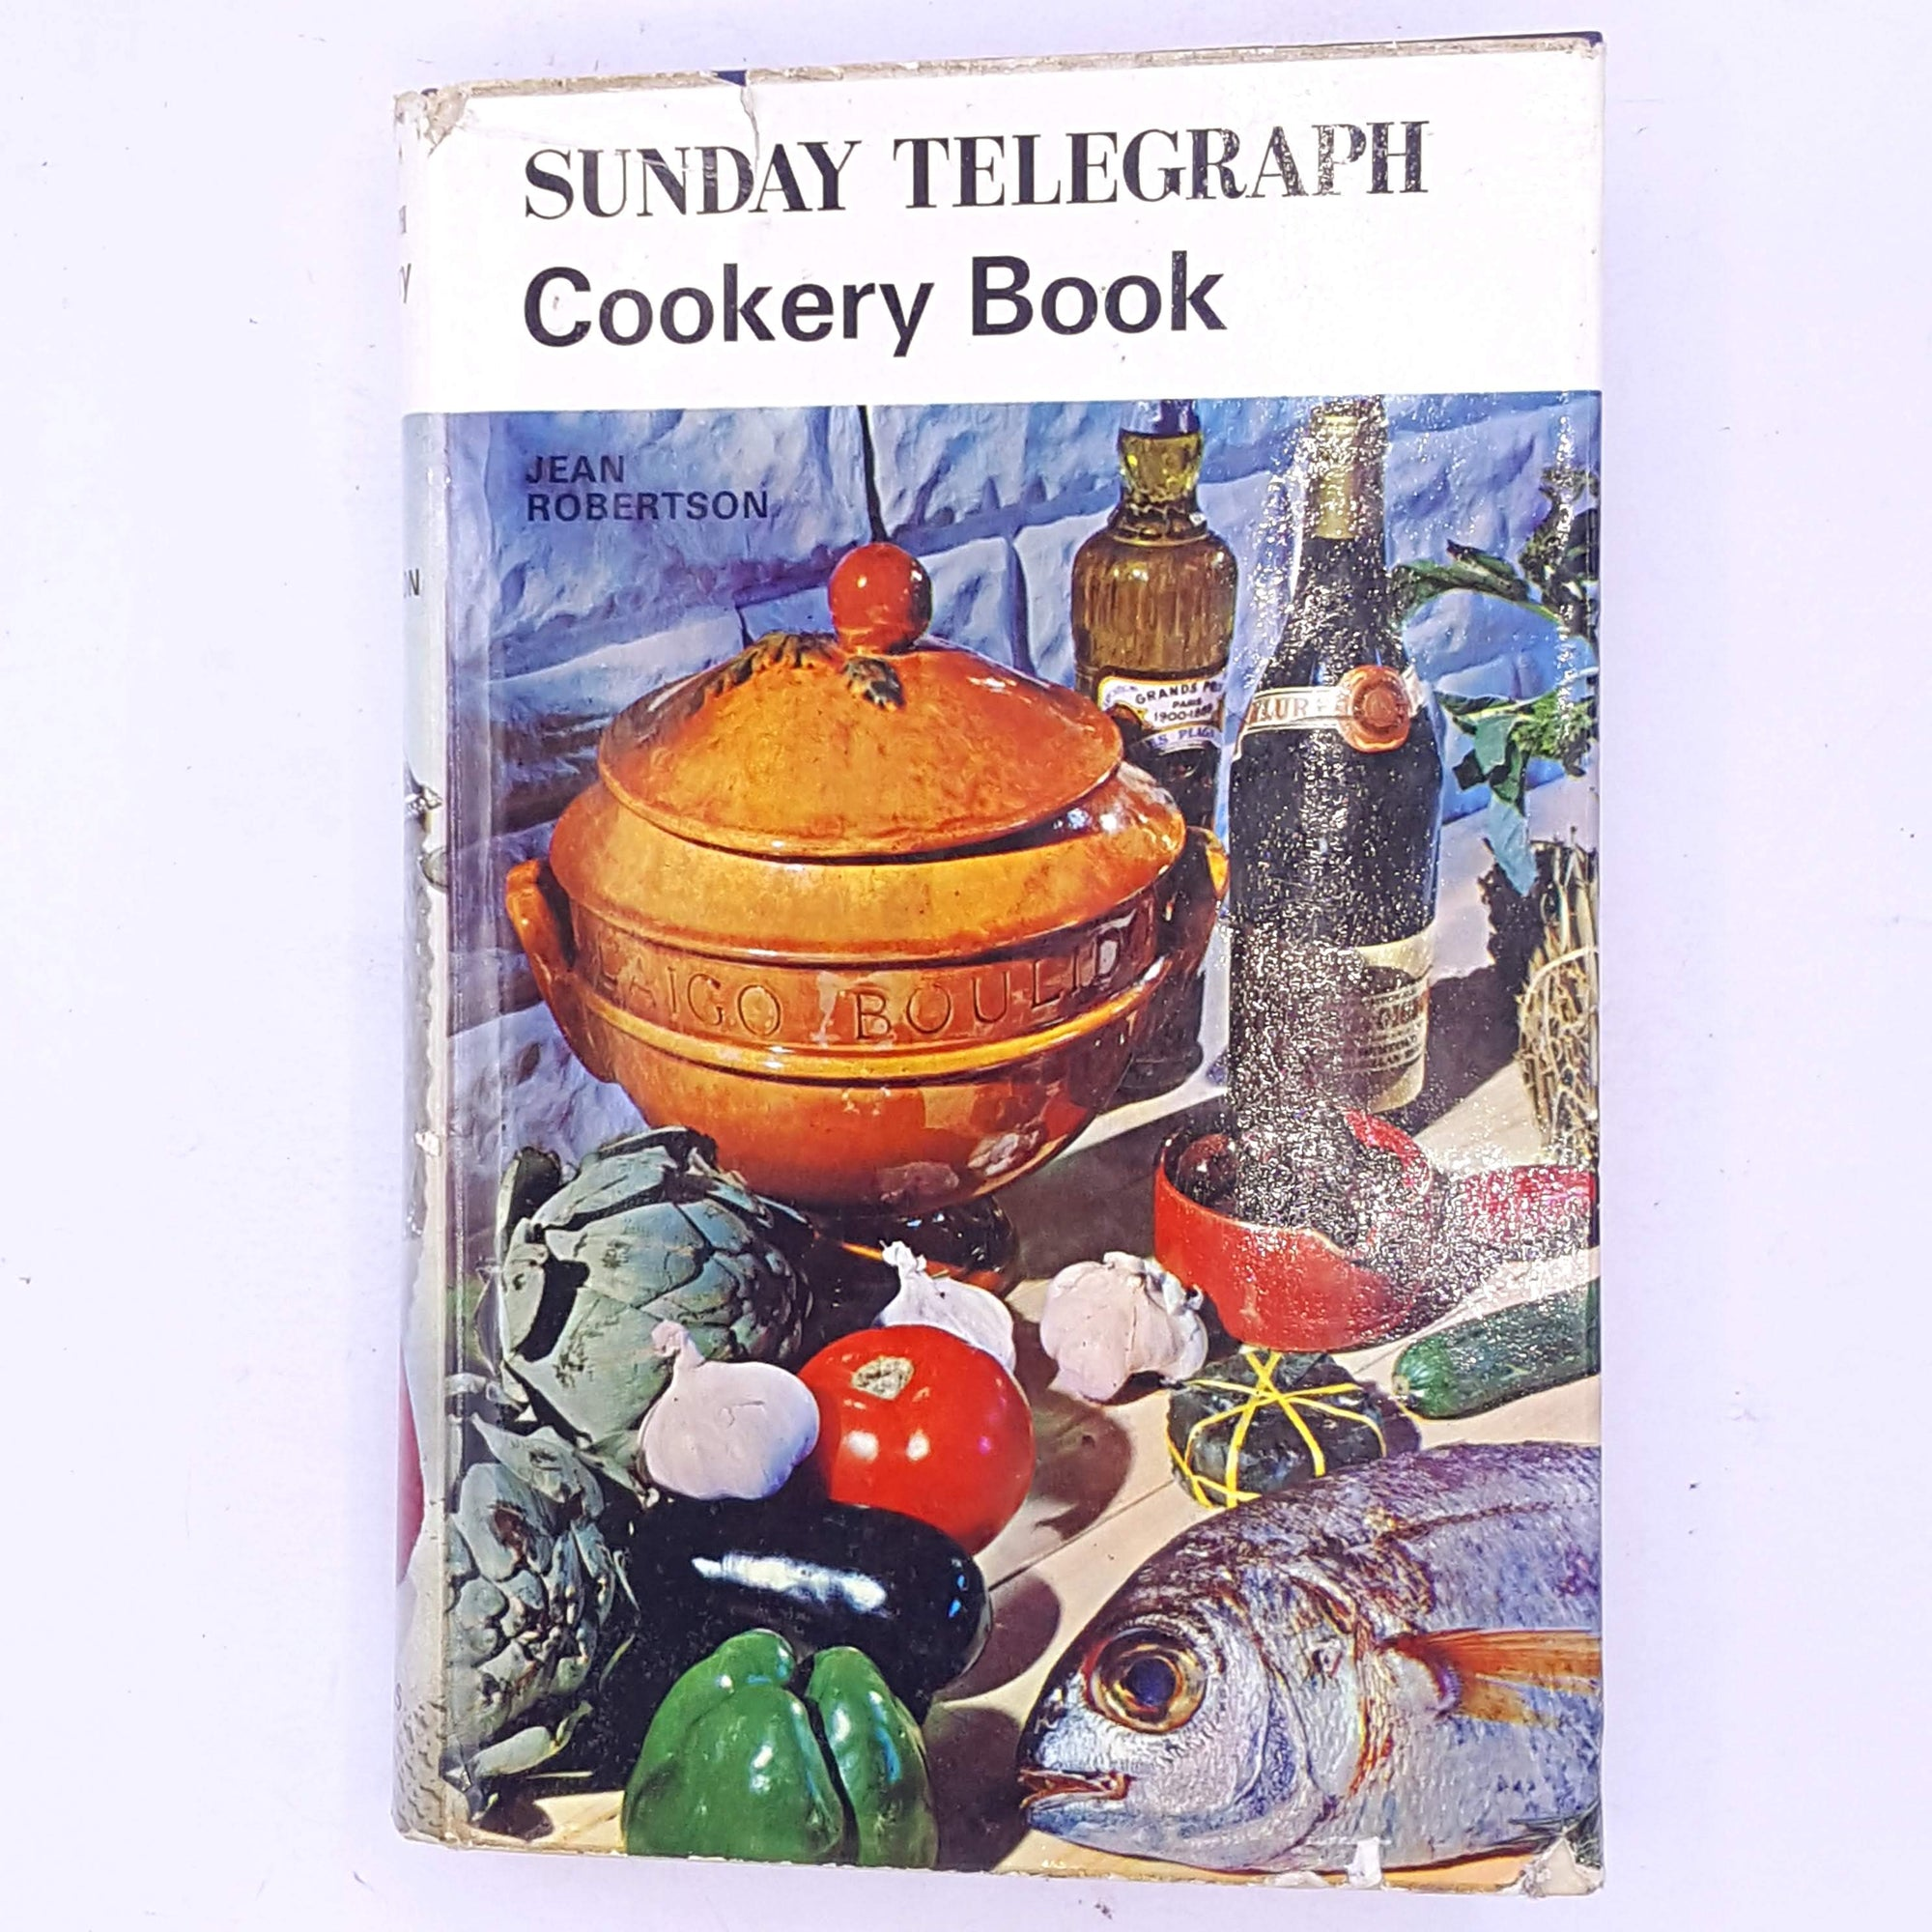 cooking-baking-Sunday-Telegraph-Cookery-Book-by-Jean-Robertson-decorative-books-antique-food-ingredients- for-foodies-vintage-cookbook-recipe-book-baking-book-patterned-sweet-savoury-dishes- country-house-library-old-food-breakfast-lunch-dinner-thrift-classic-